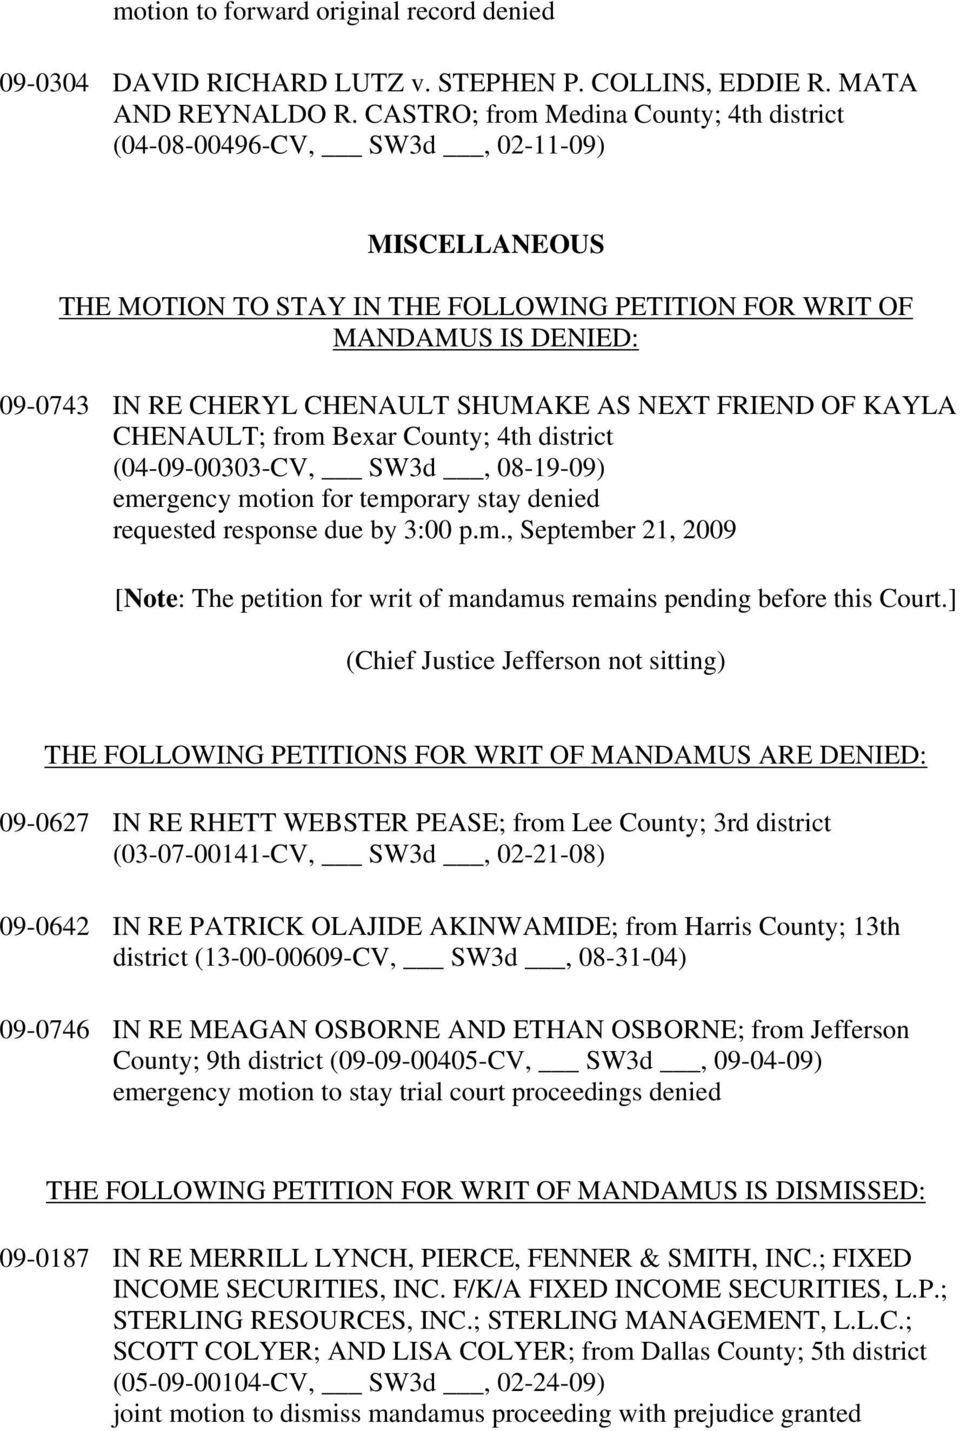 SHUMAKE AS NEXT FRIEND OF KAYLA CHENAULT; from Bexar County; 4th district (04-09-00303-CV, SW3d, 08-19-09) emergency motion for temporary stay denied requested response due by 3:00 p.m., September 21, 2009 [Note: The petition for writ of mandamus remains pending before this Court.